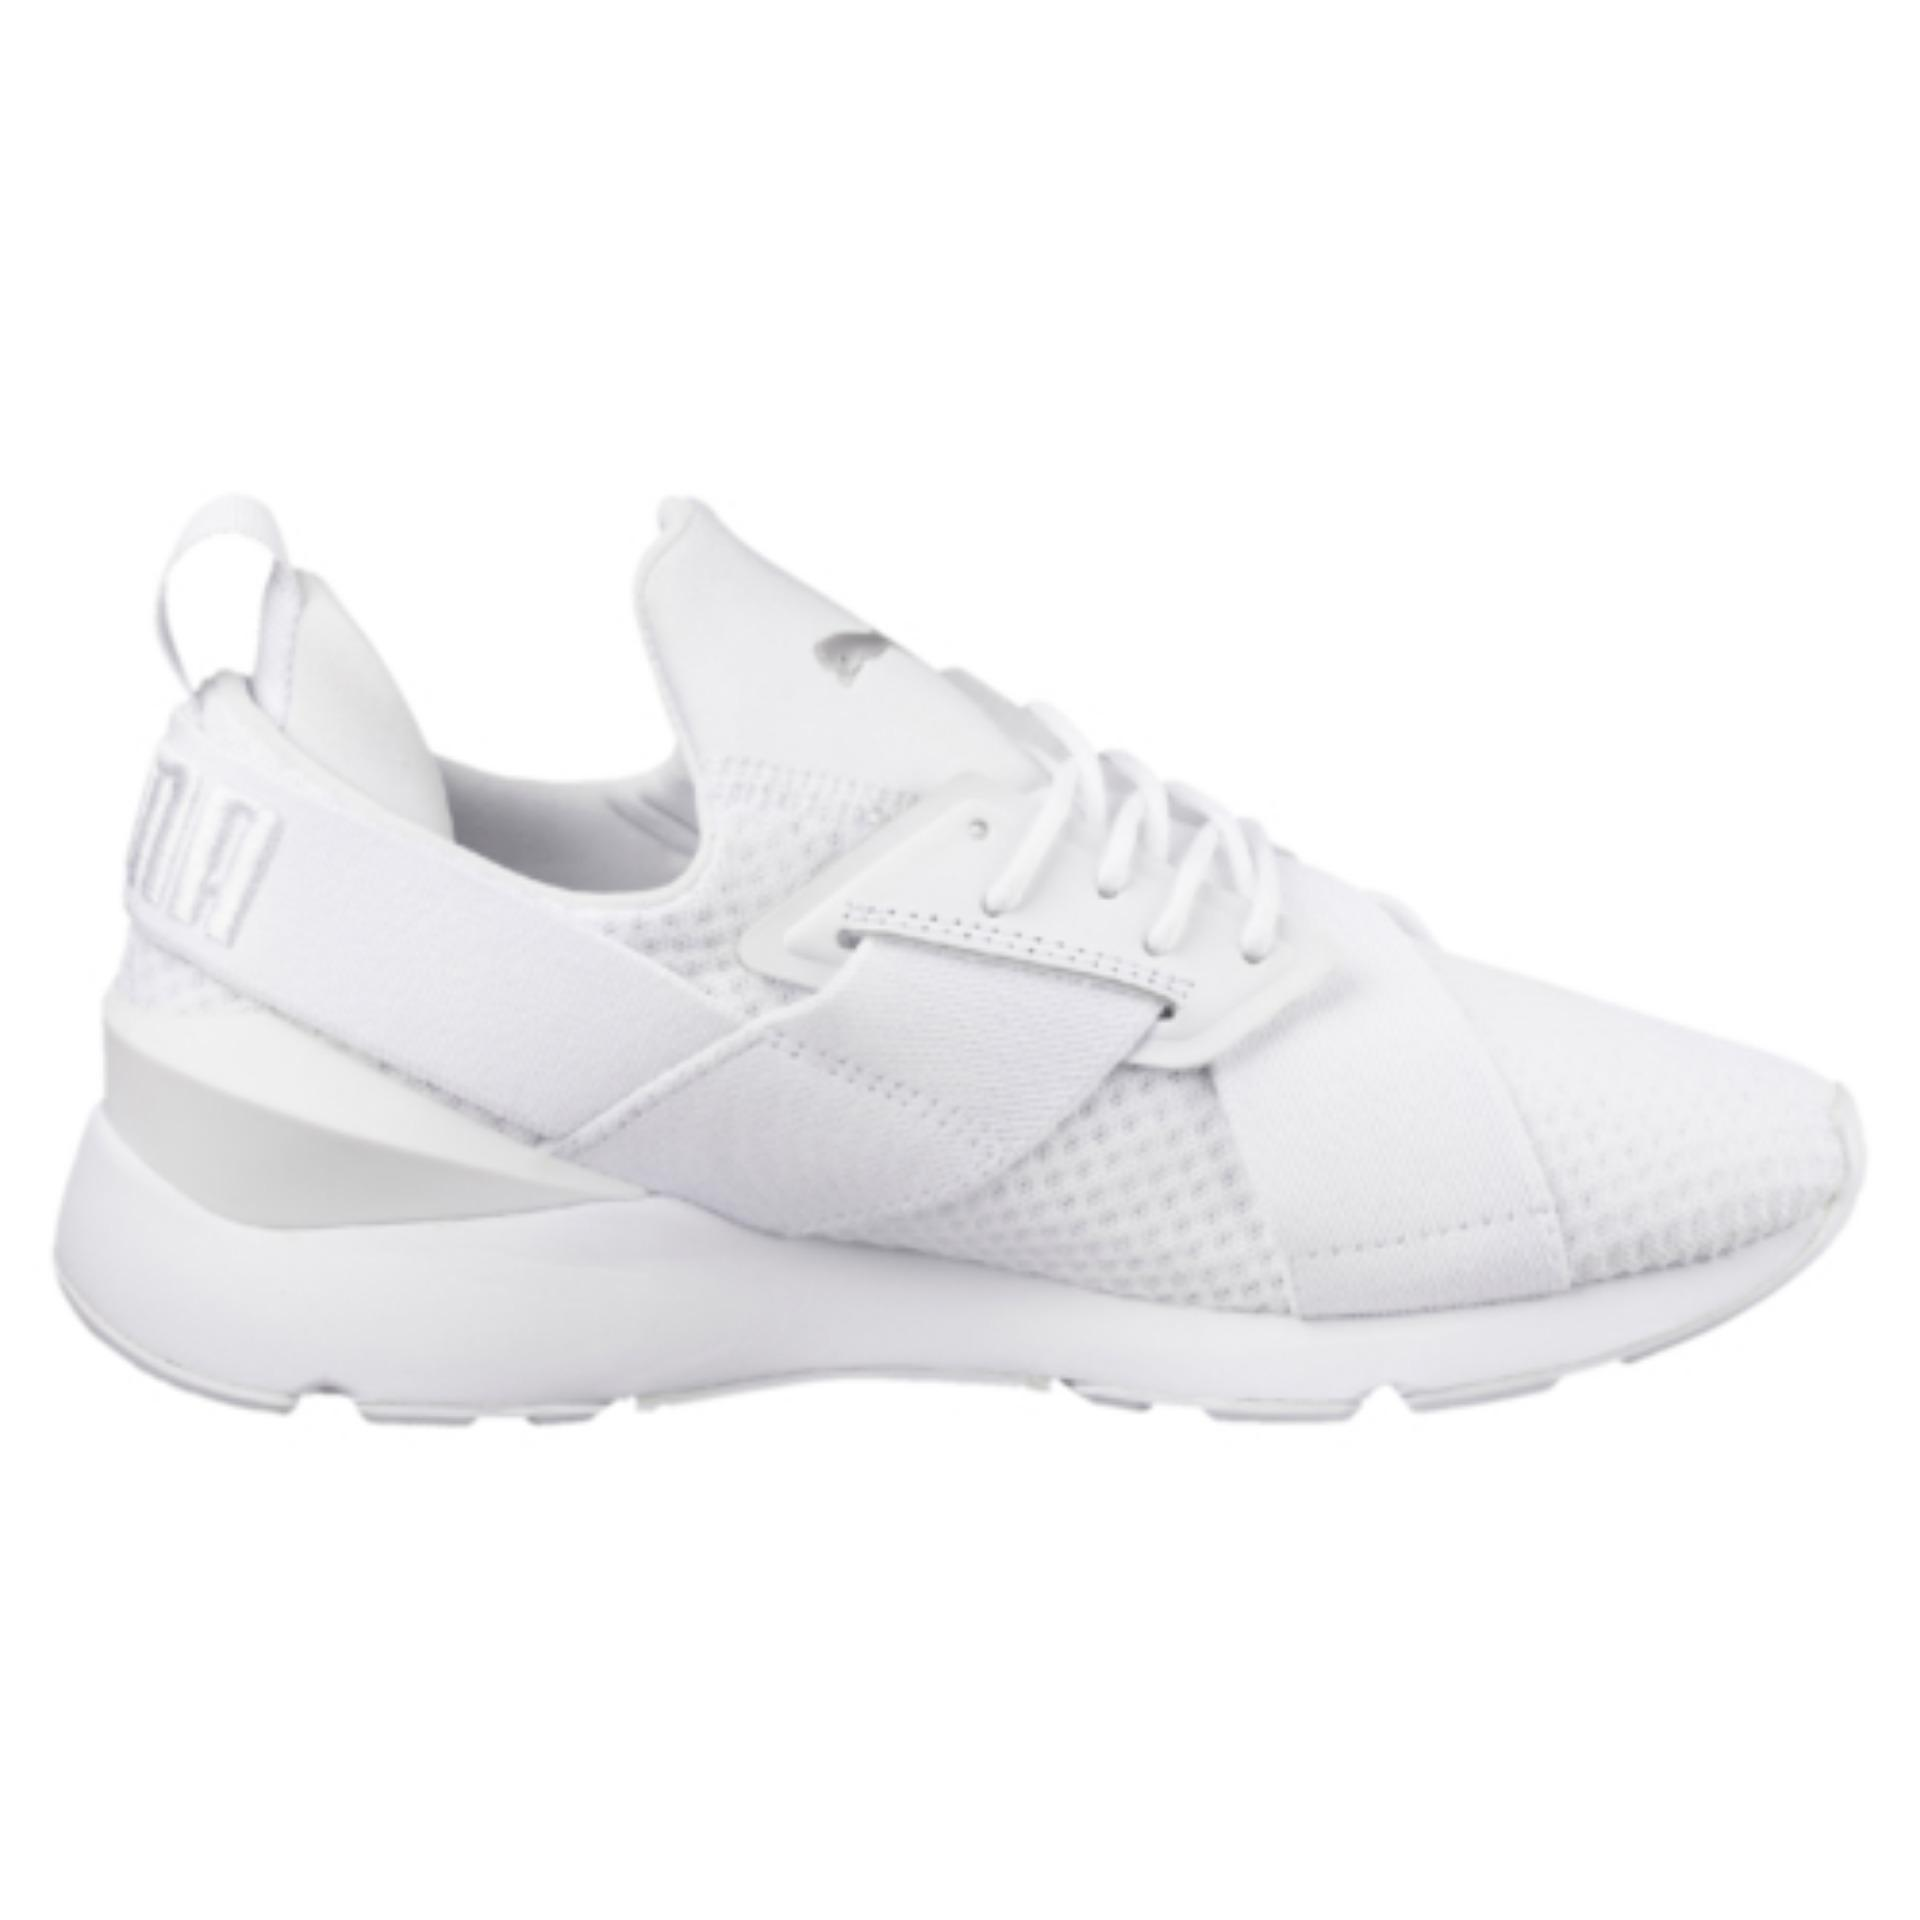 puma sneakers shoes for womens Sale 10f9d4263